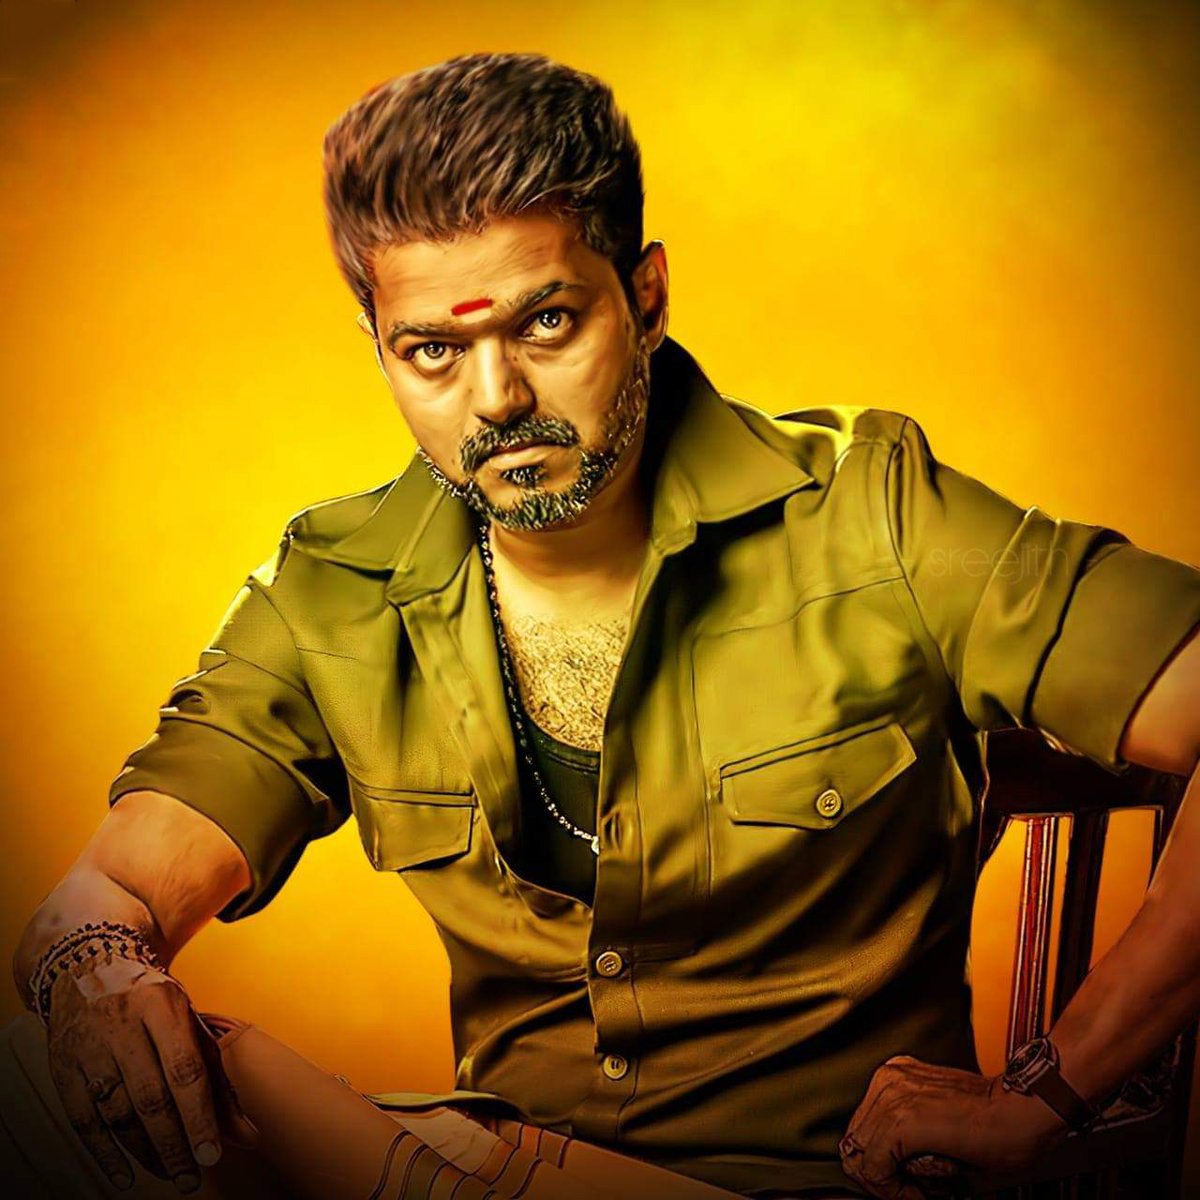 vijay pic free background download